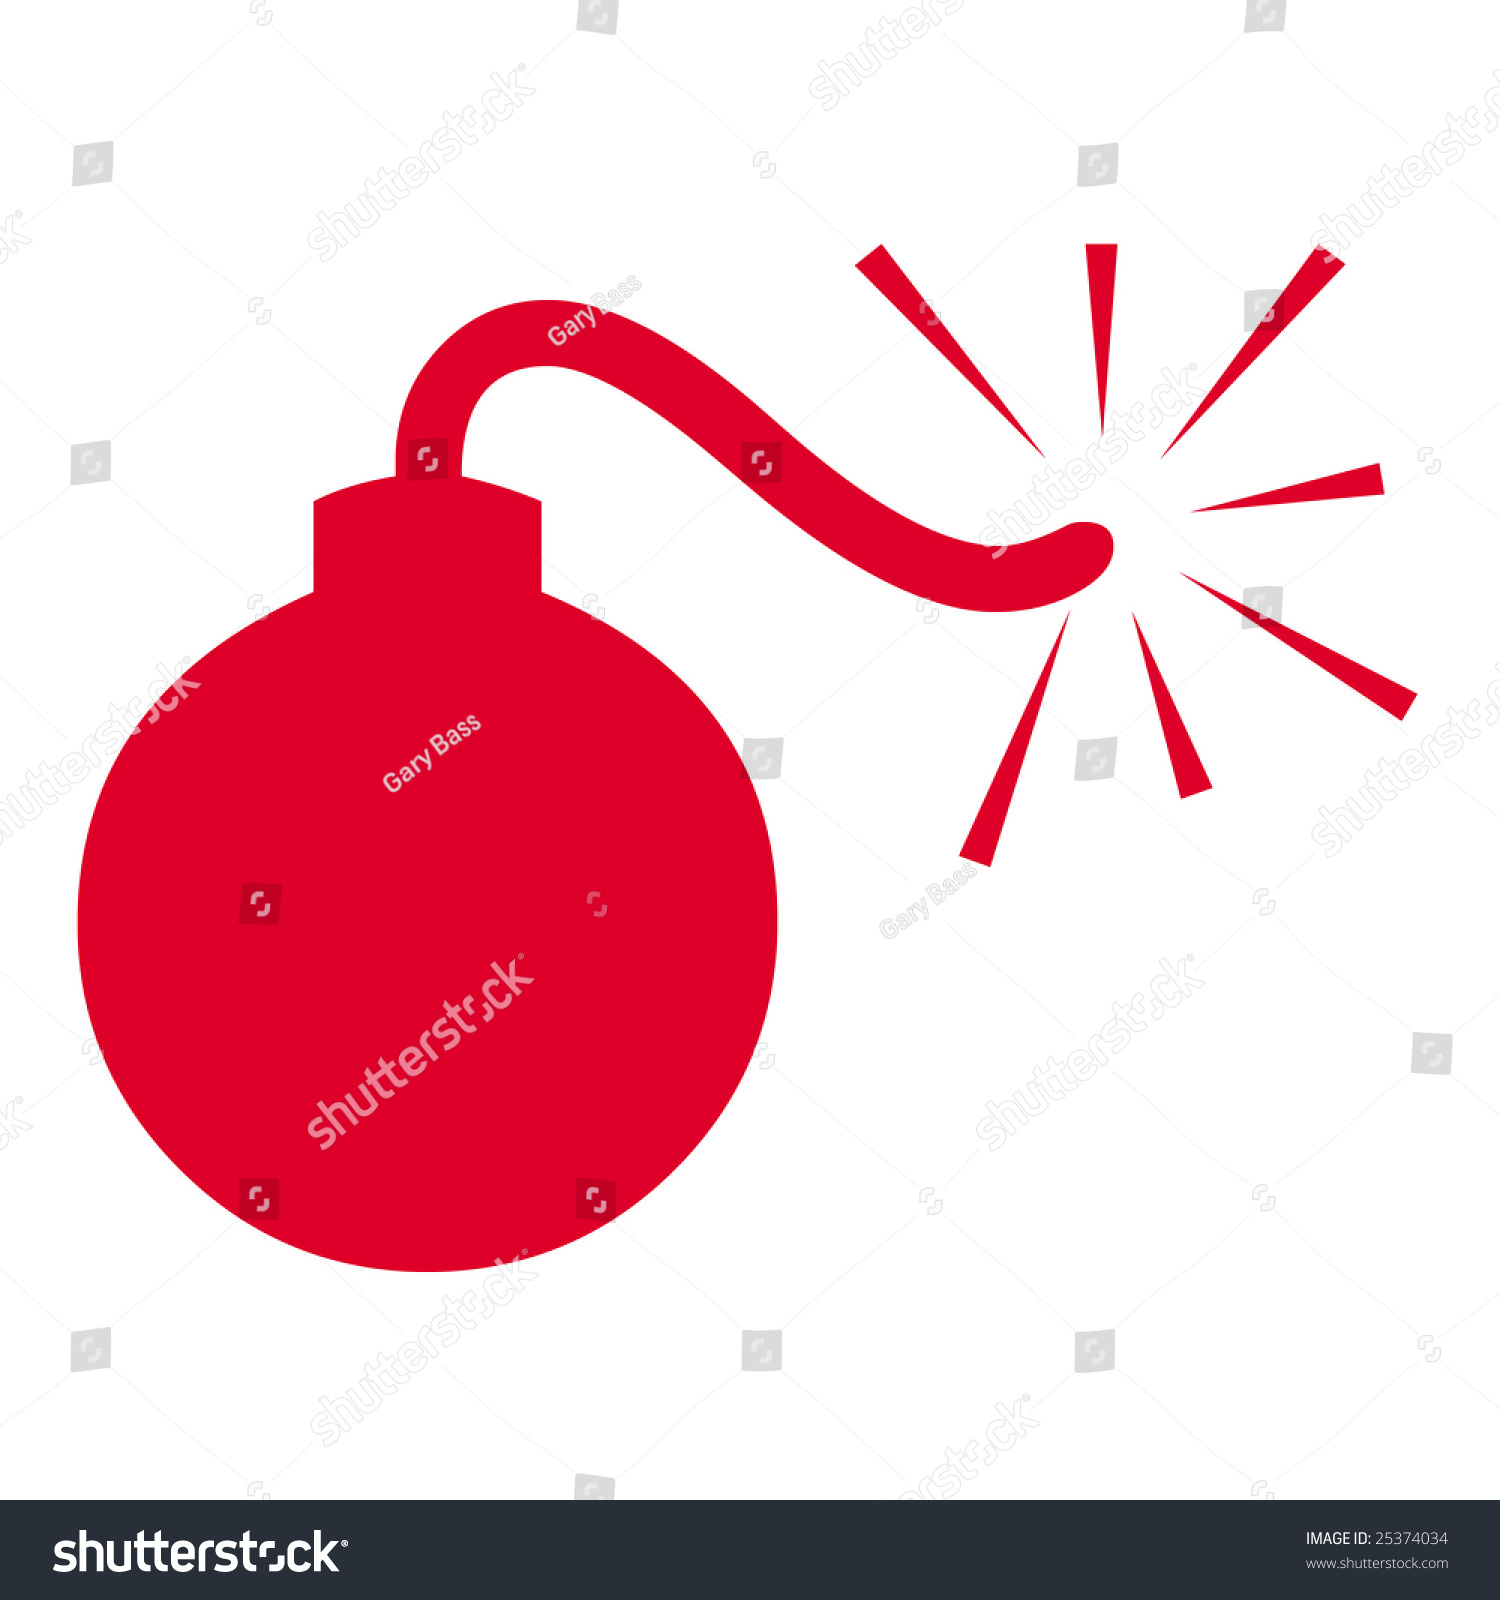 Bomb Symbol Stock Illustration 25374034 Shutterstock